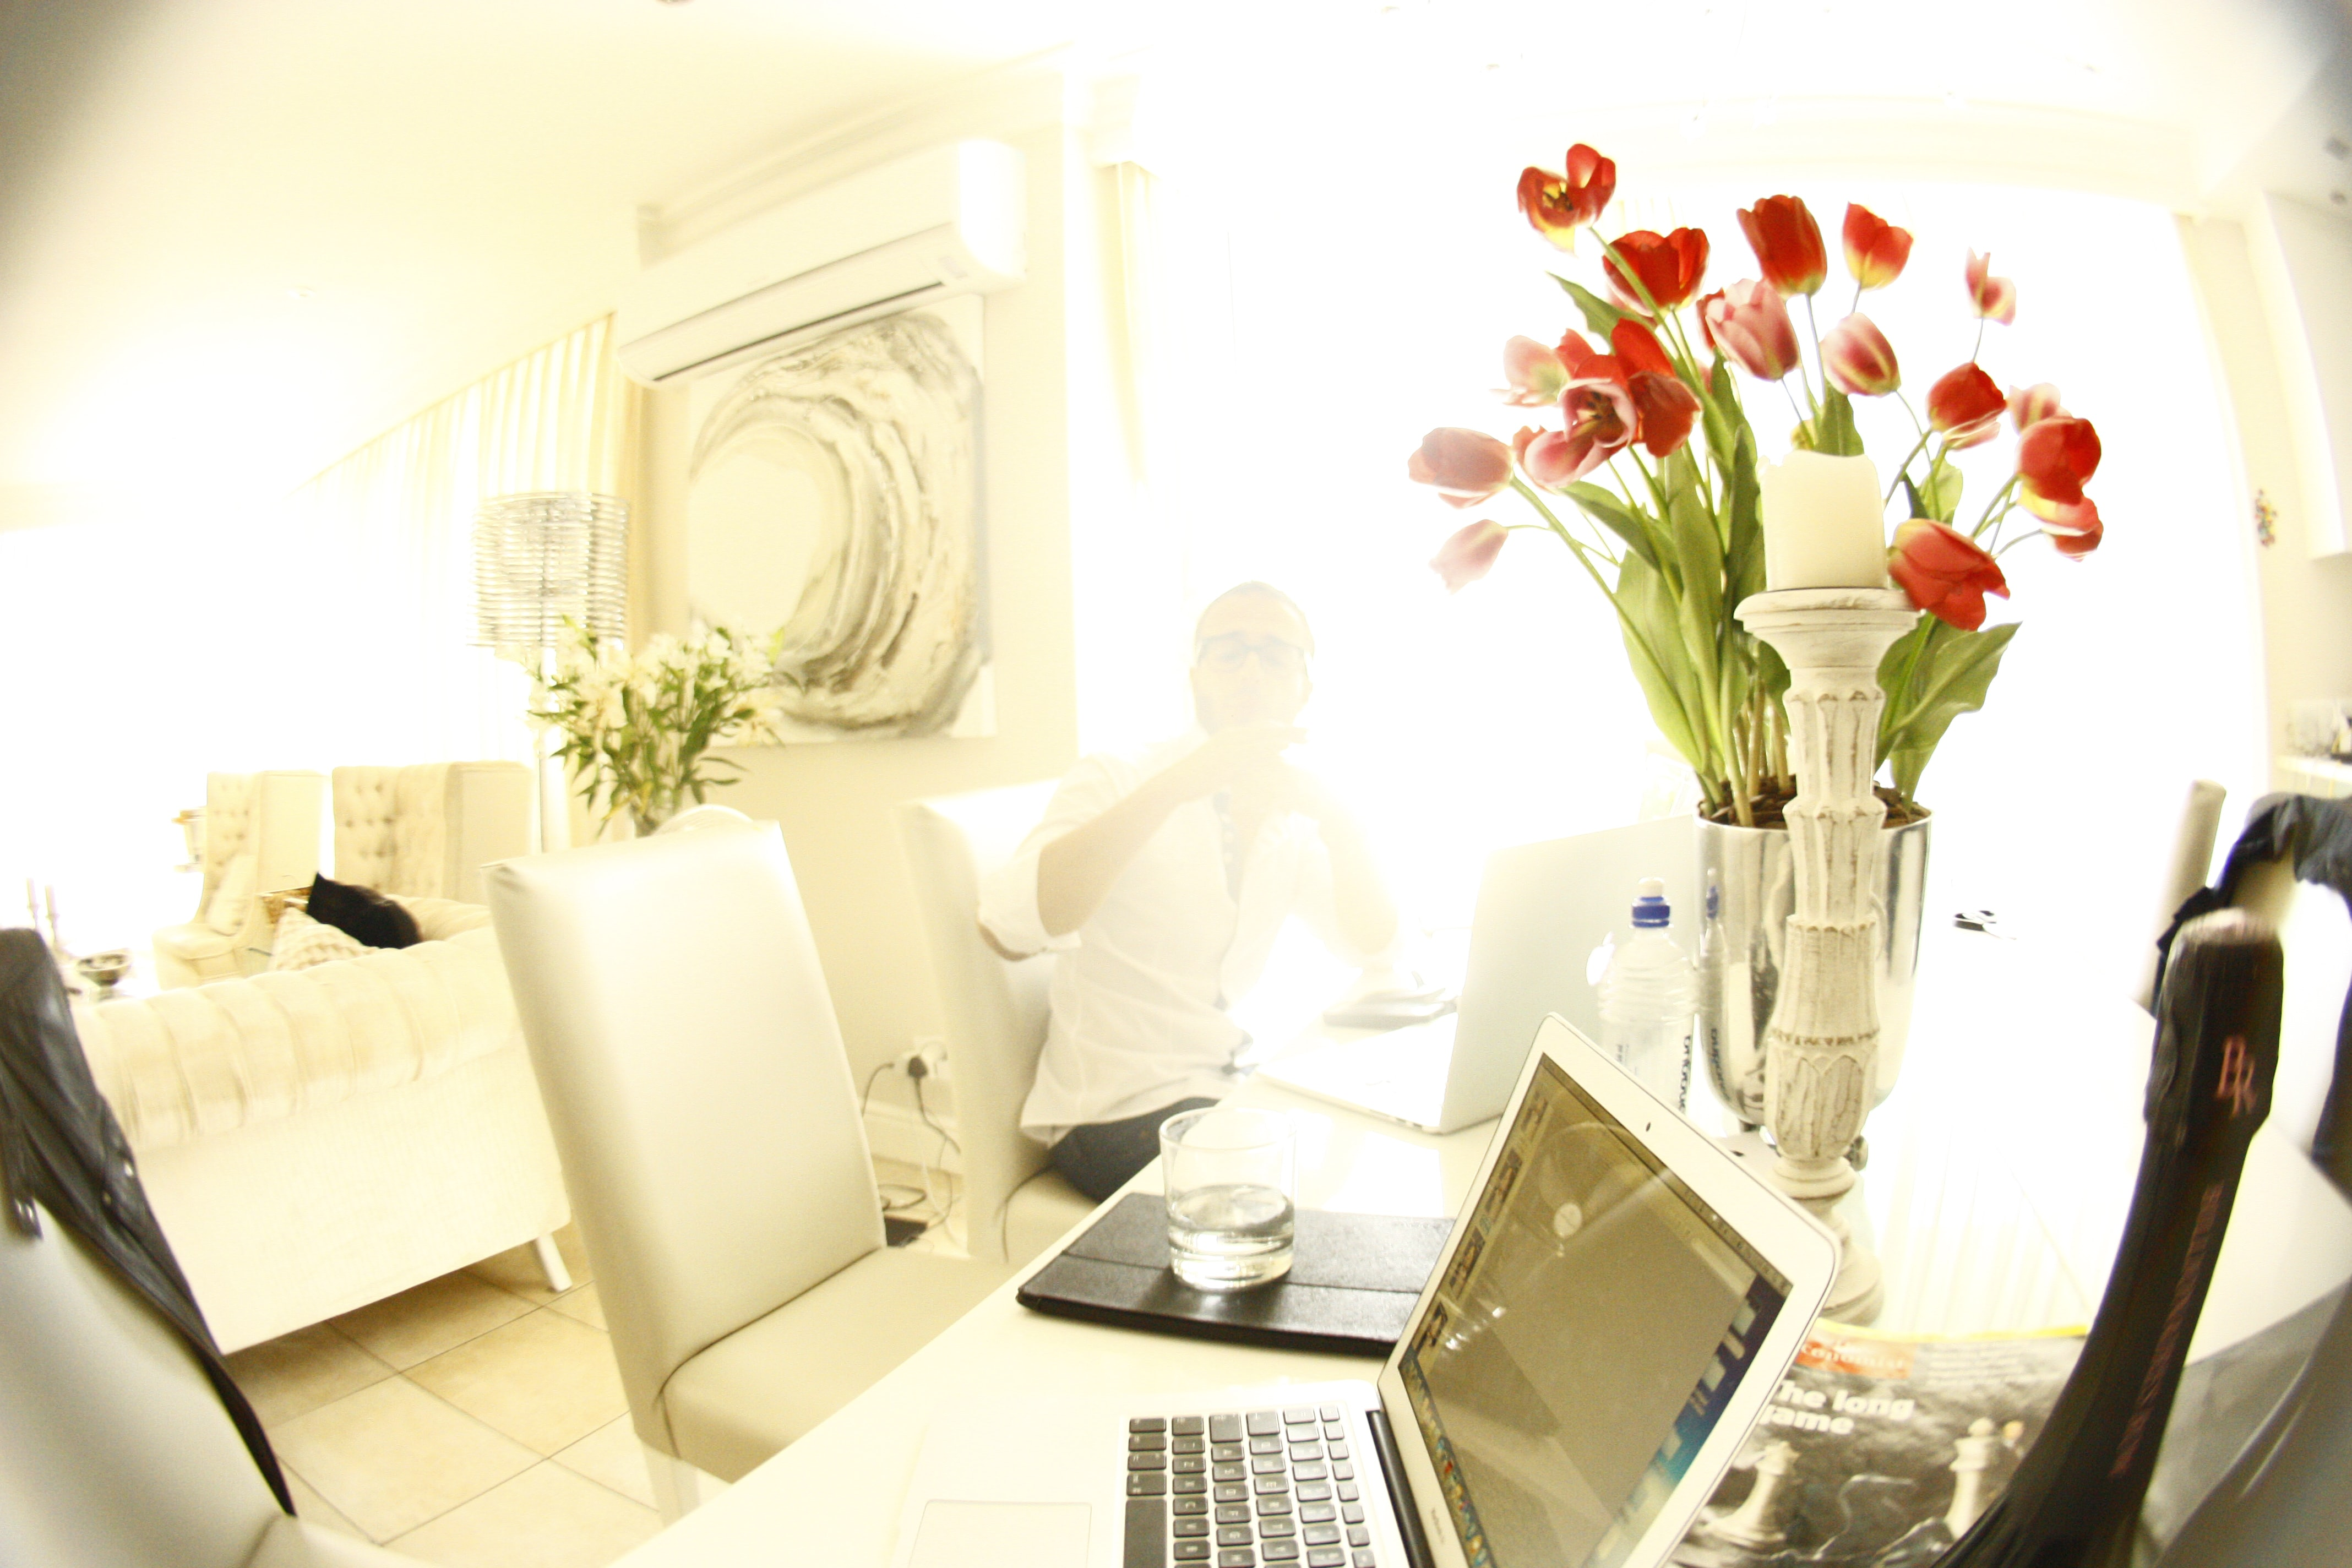 A laptop next to a vase full of red roses.